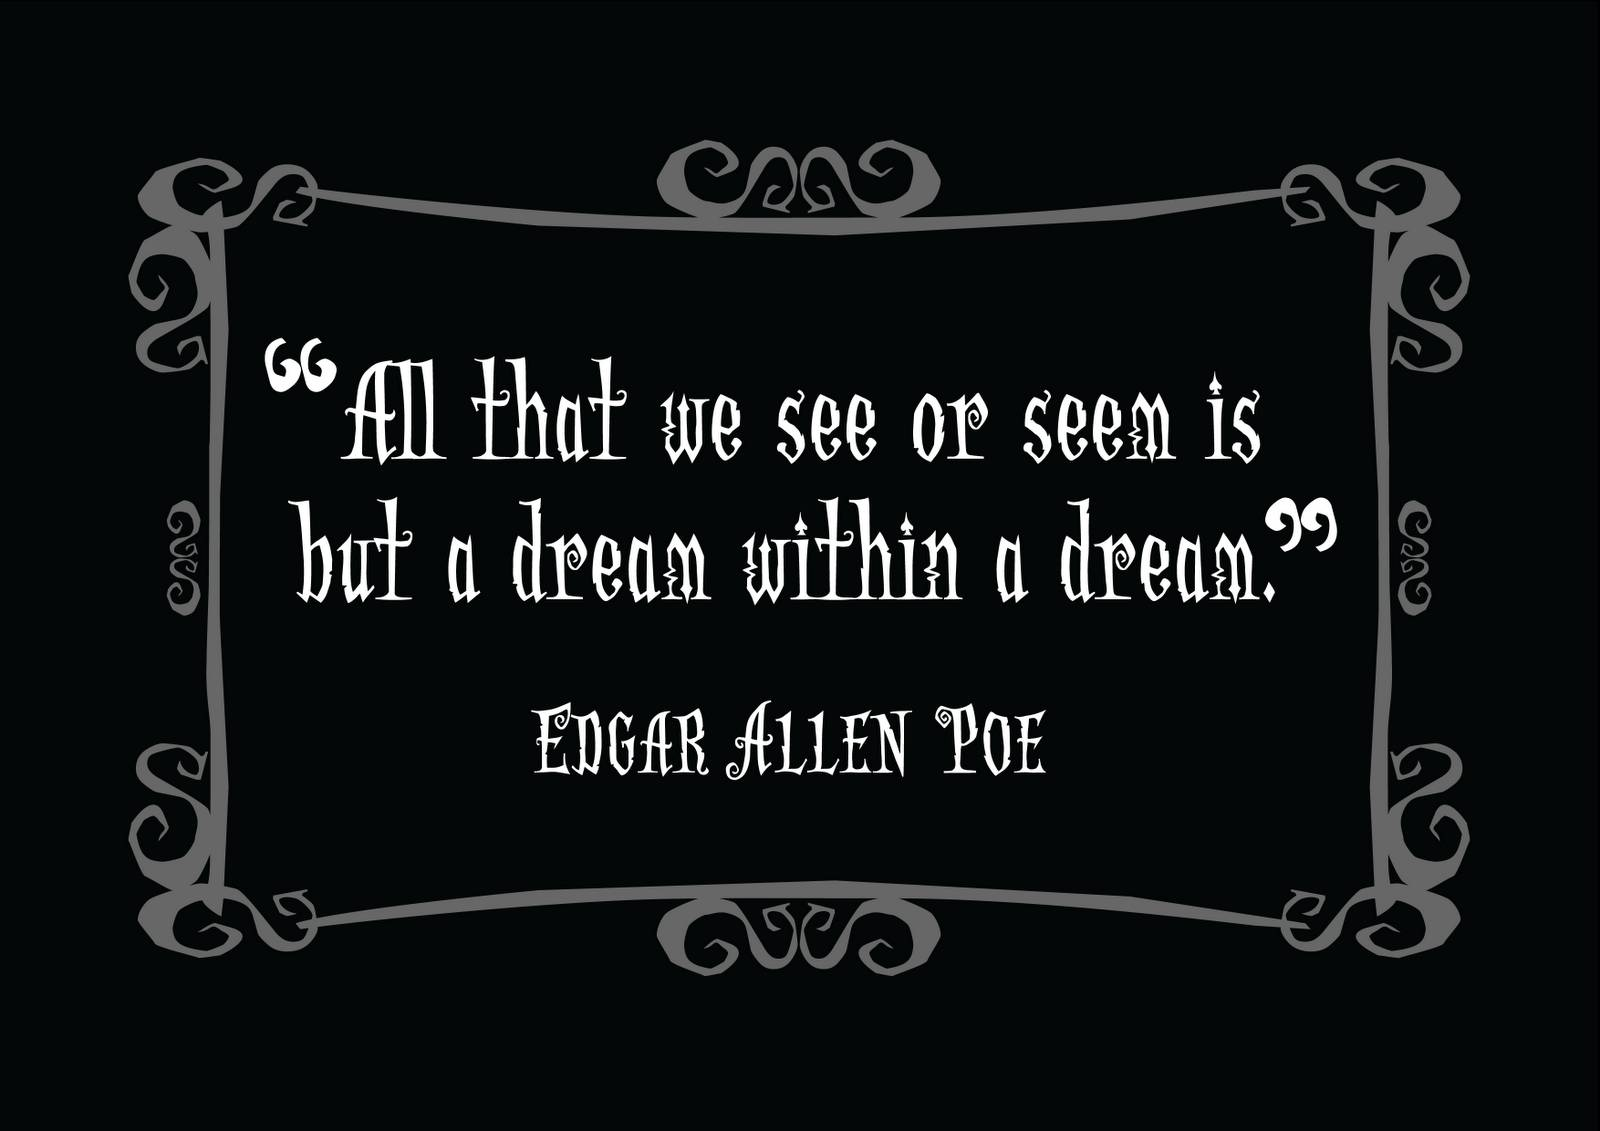 Edgar Allan Poe Quotes 2 A picture of Edgar Allan Poe along with a 1600x1131